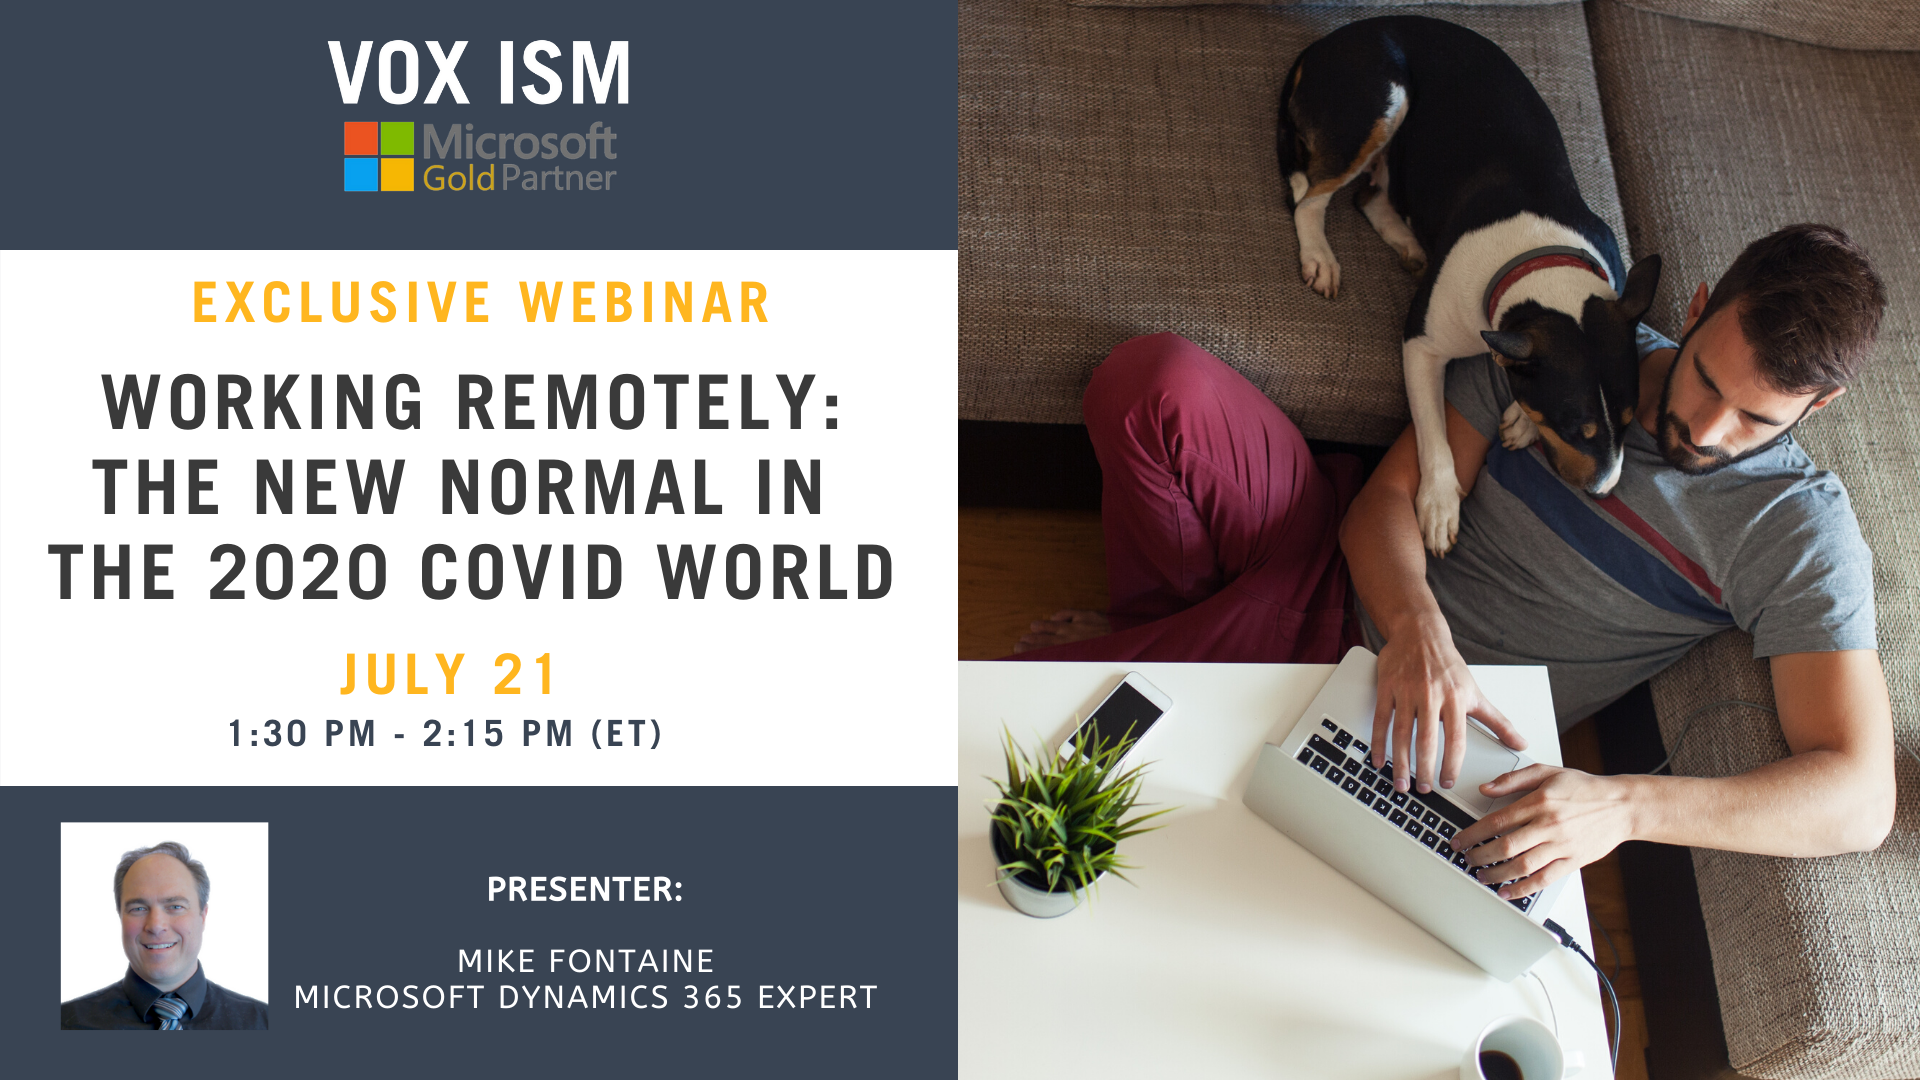 Working Remotely: The New Normal in The 2020 COVID-19 World - July 21 - Webinar VOX ISM